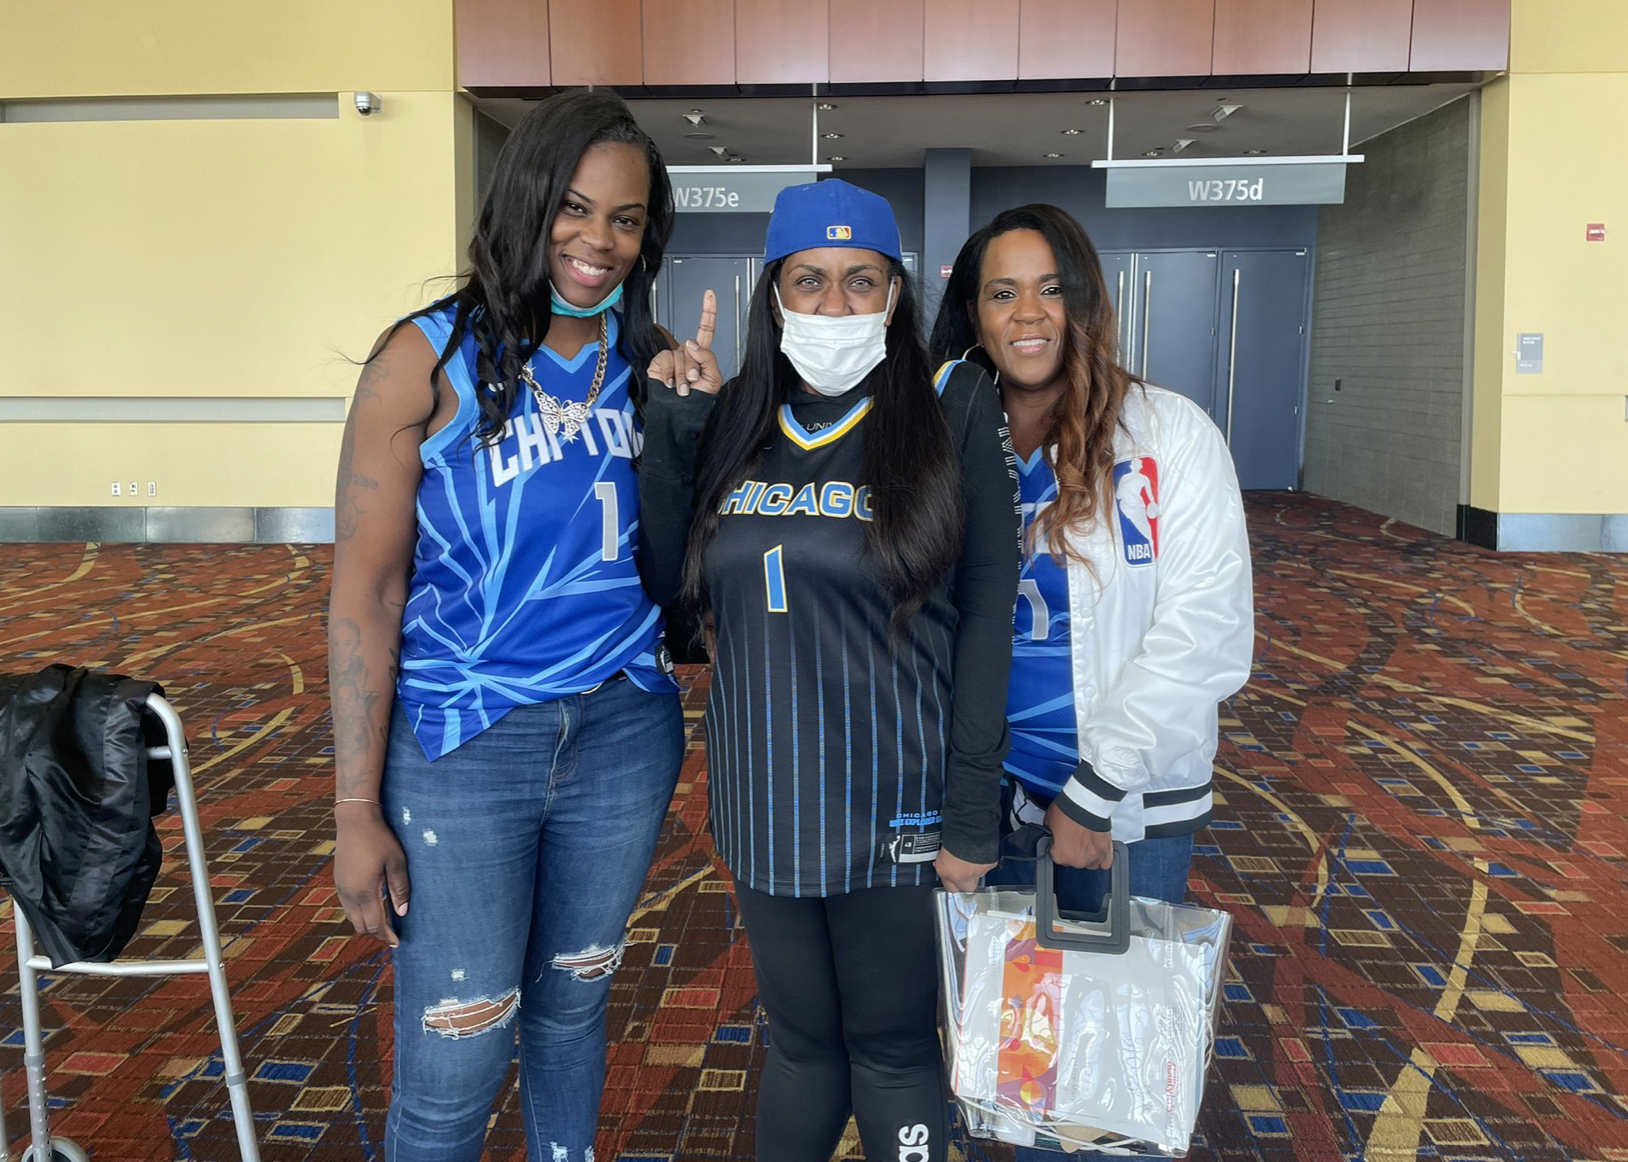 Breannah Ranger (left) is set to take in Game 4 of the WNBA Finals on Sunday with her aunt, Marsha Brawner (middle), and mother Michelle Ranger (right).